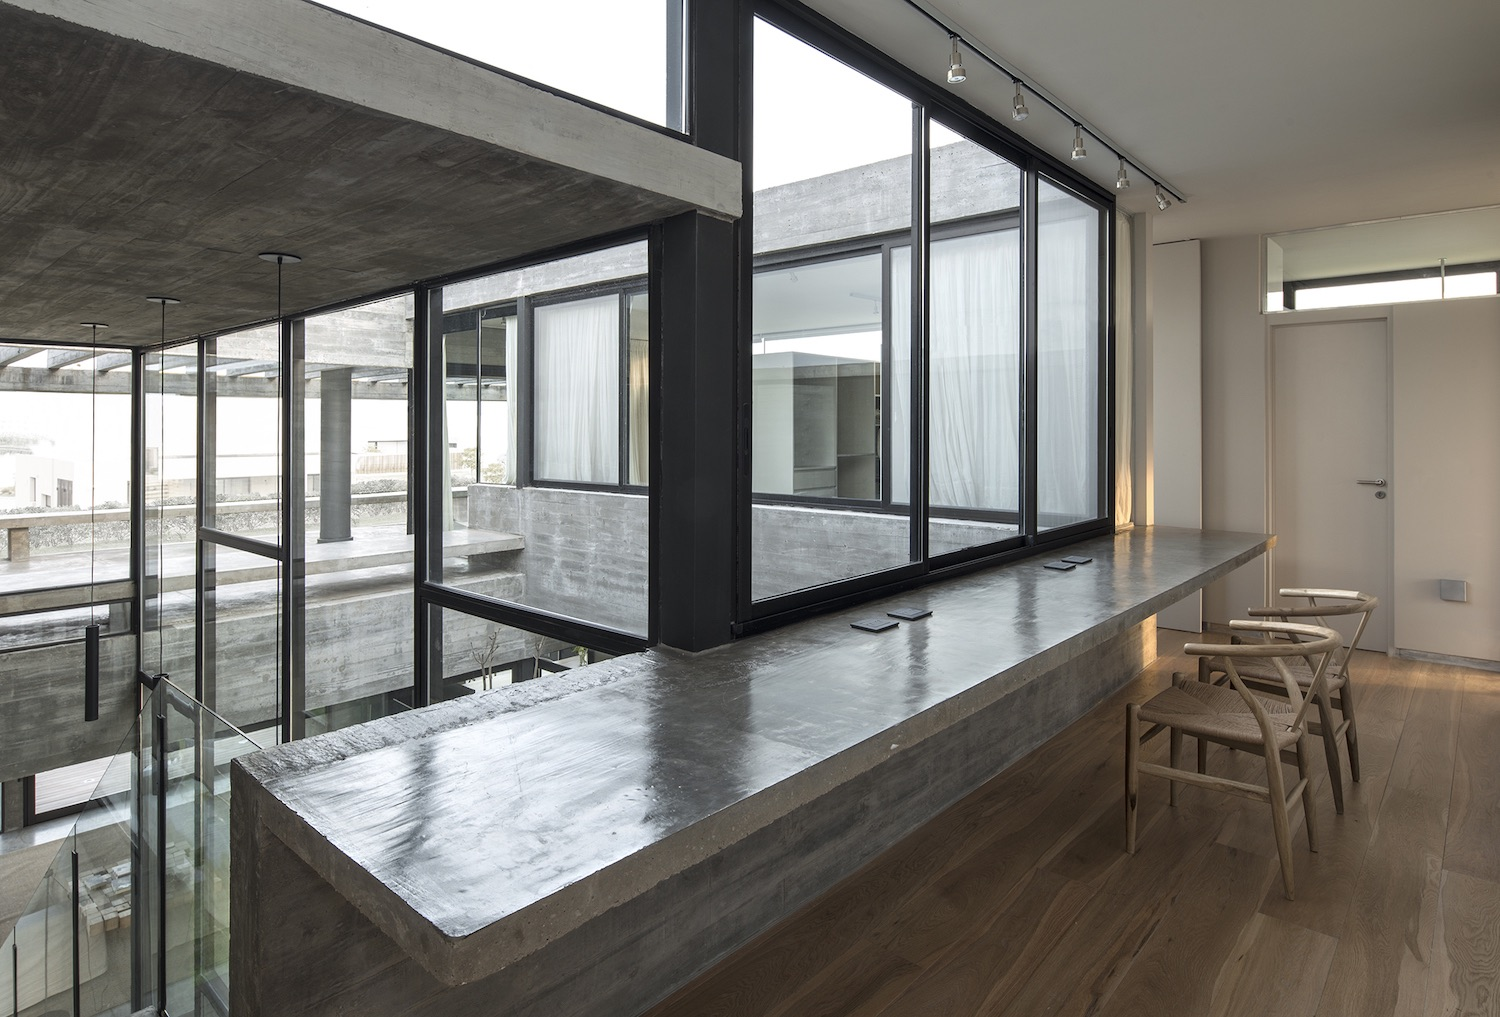 room with large glass windows